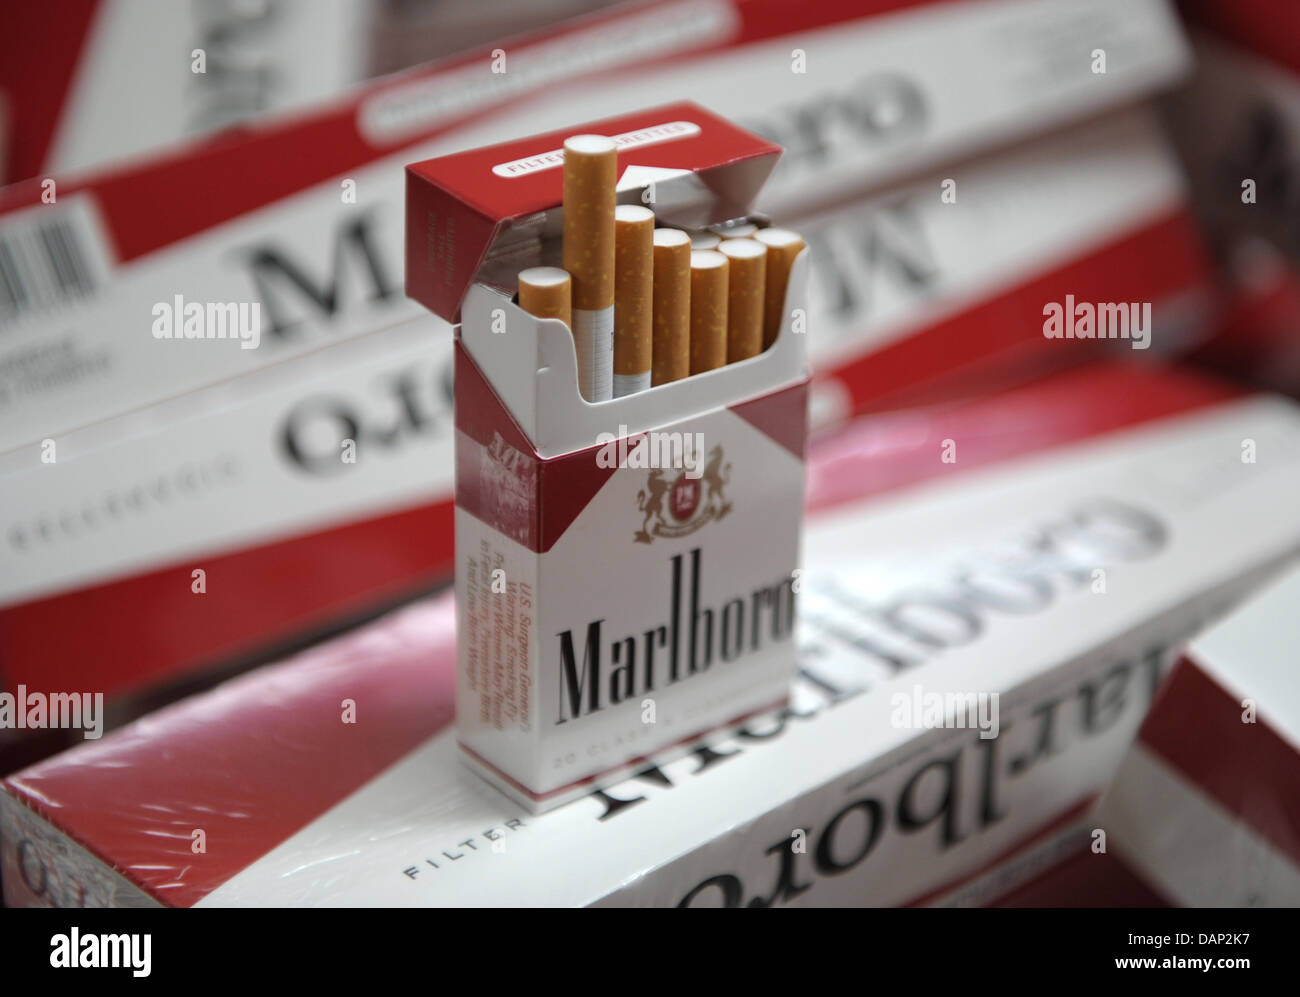 How much do cigarettes Gold Crown cost in Connecticut